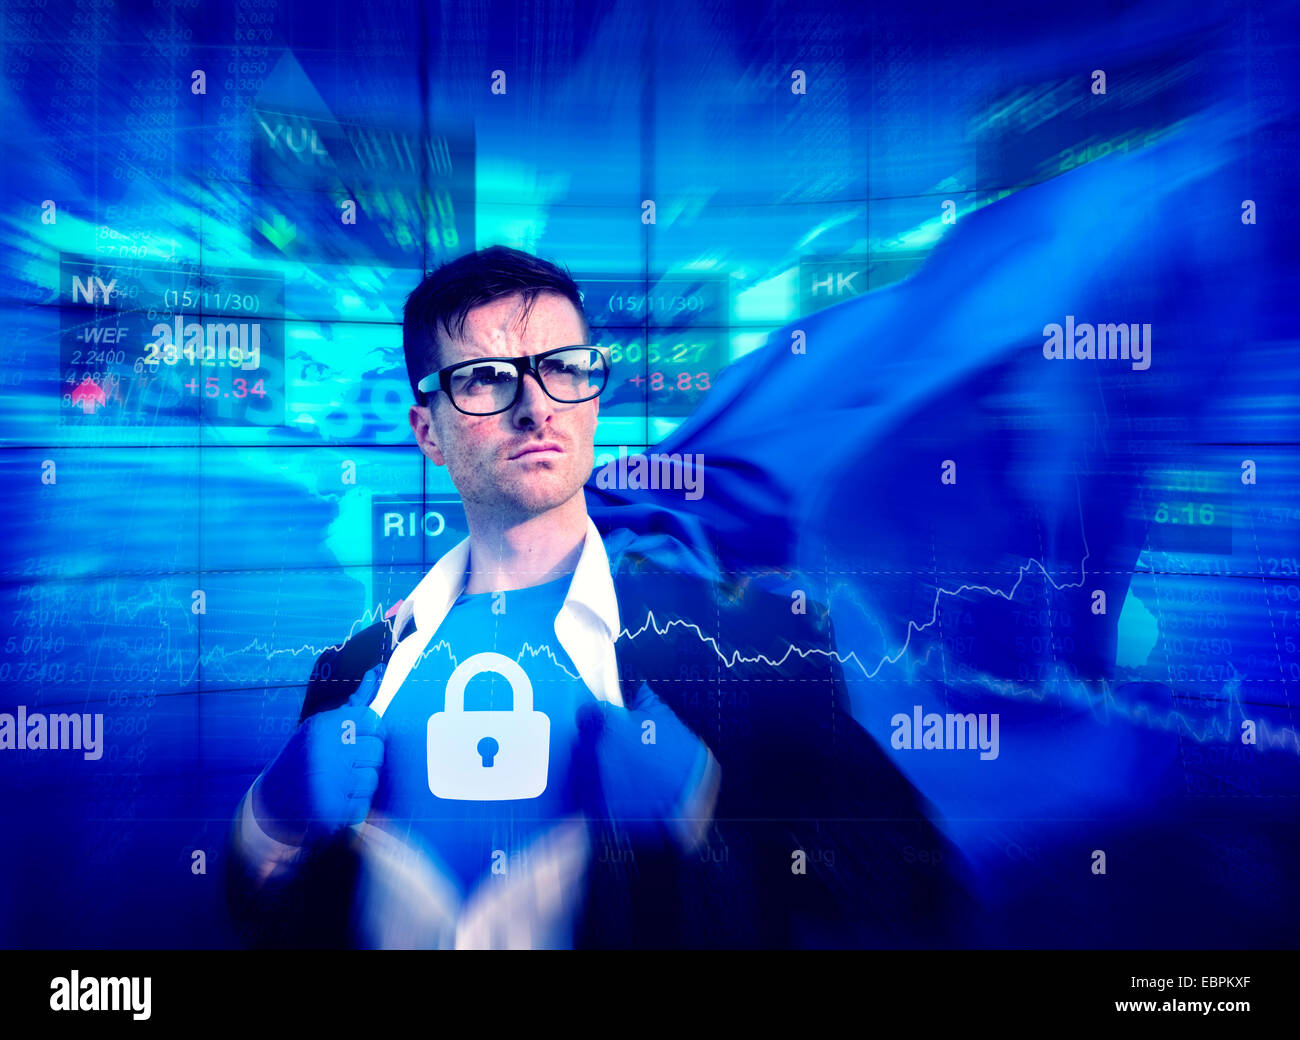 Privacy Strong Superhero Success Professional Empowerment Stock Concept - Stock Image